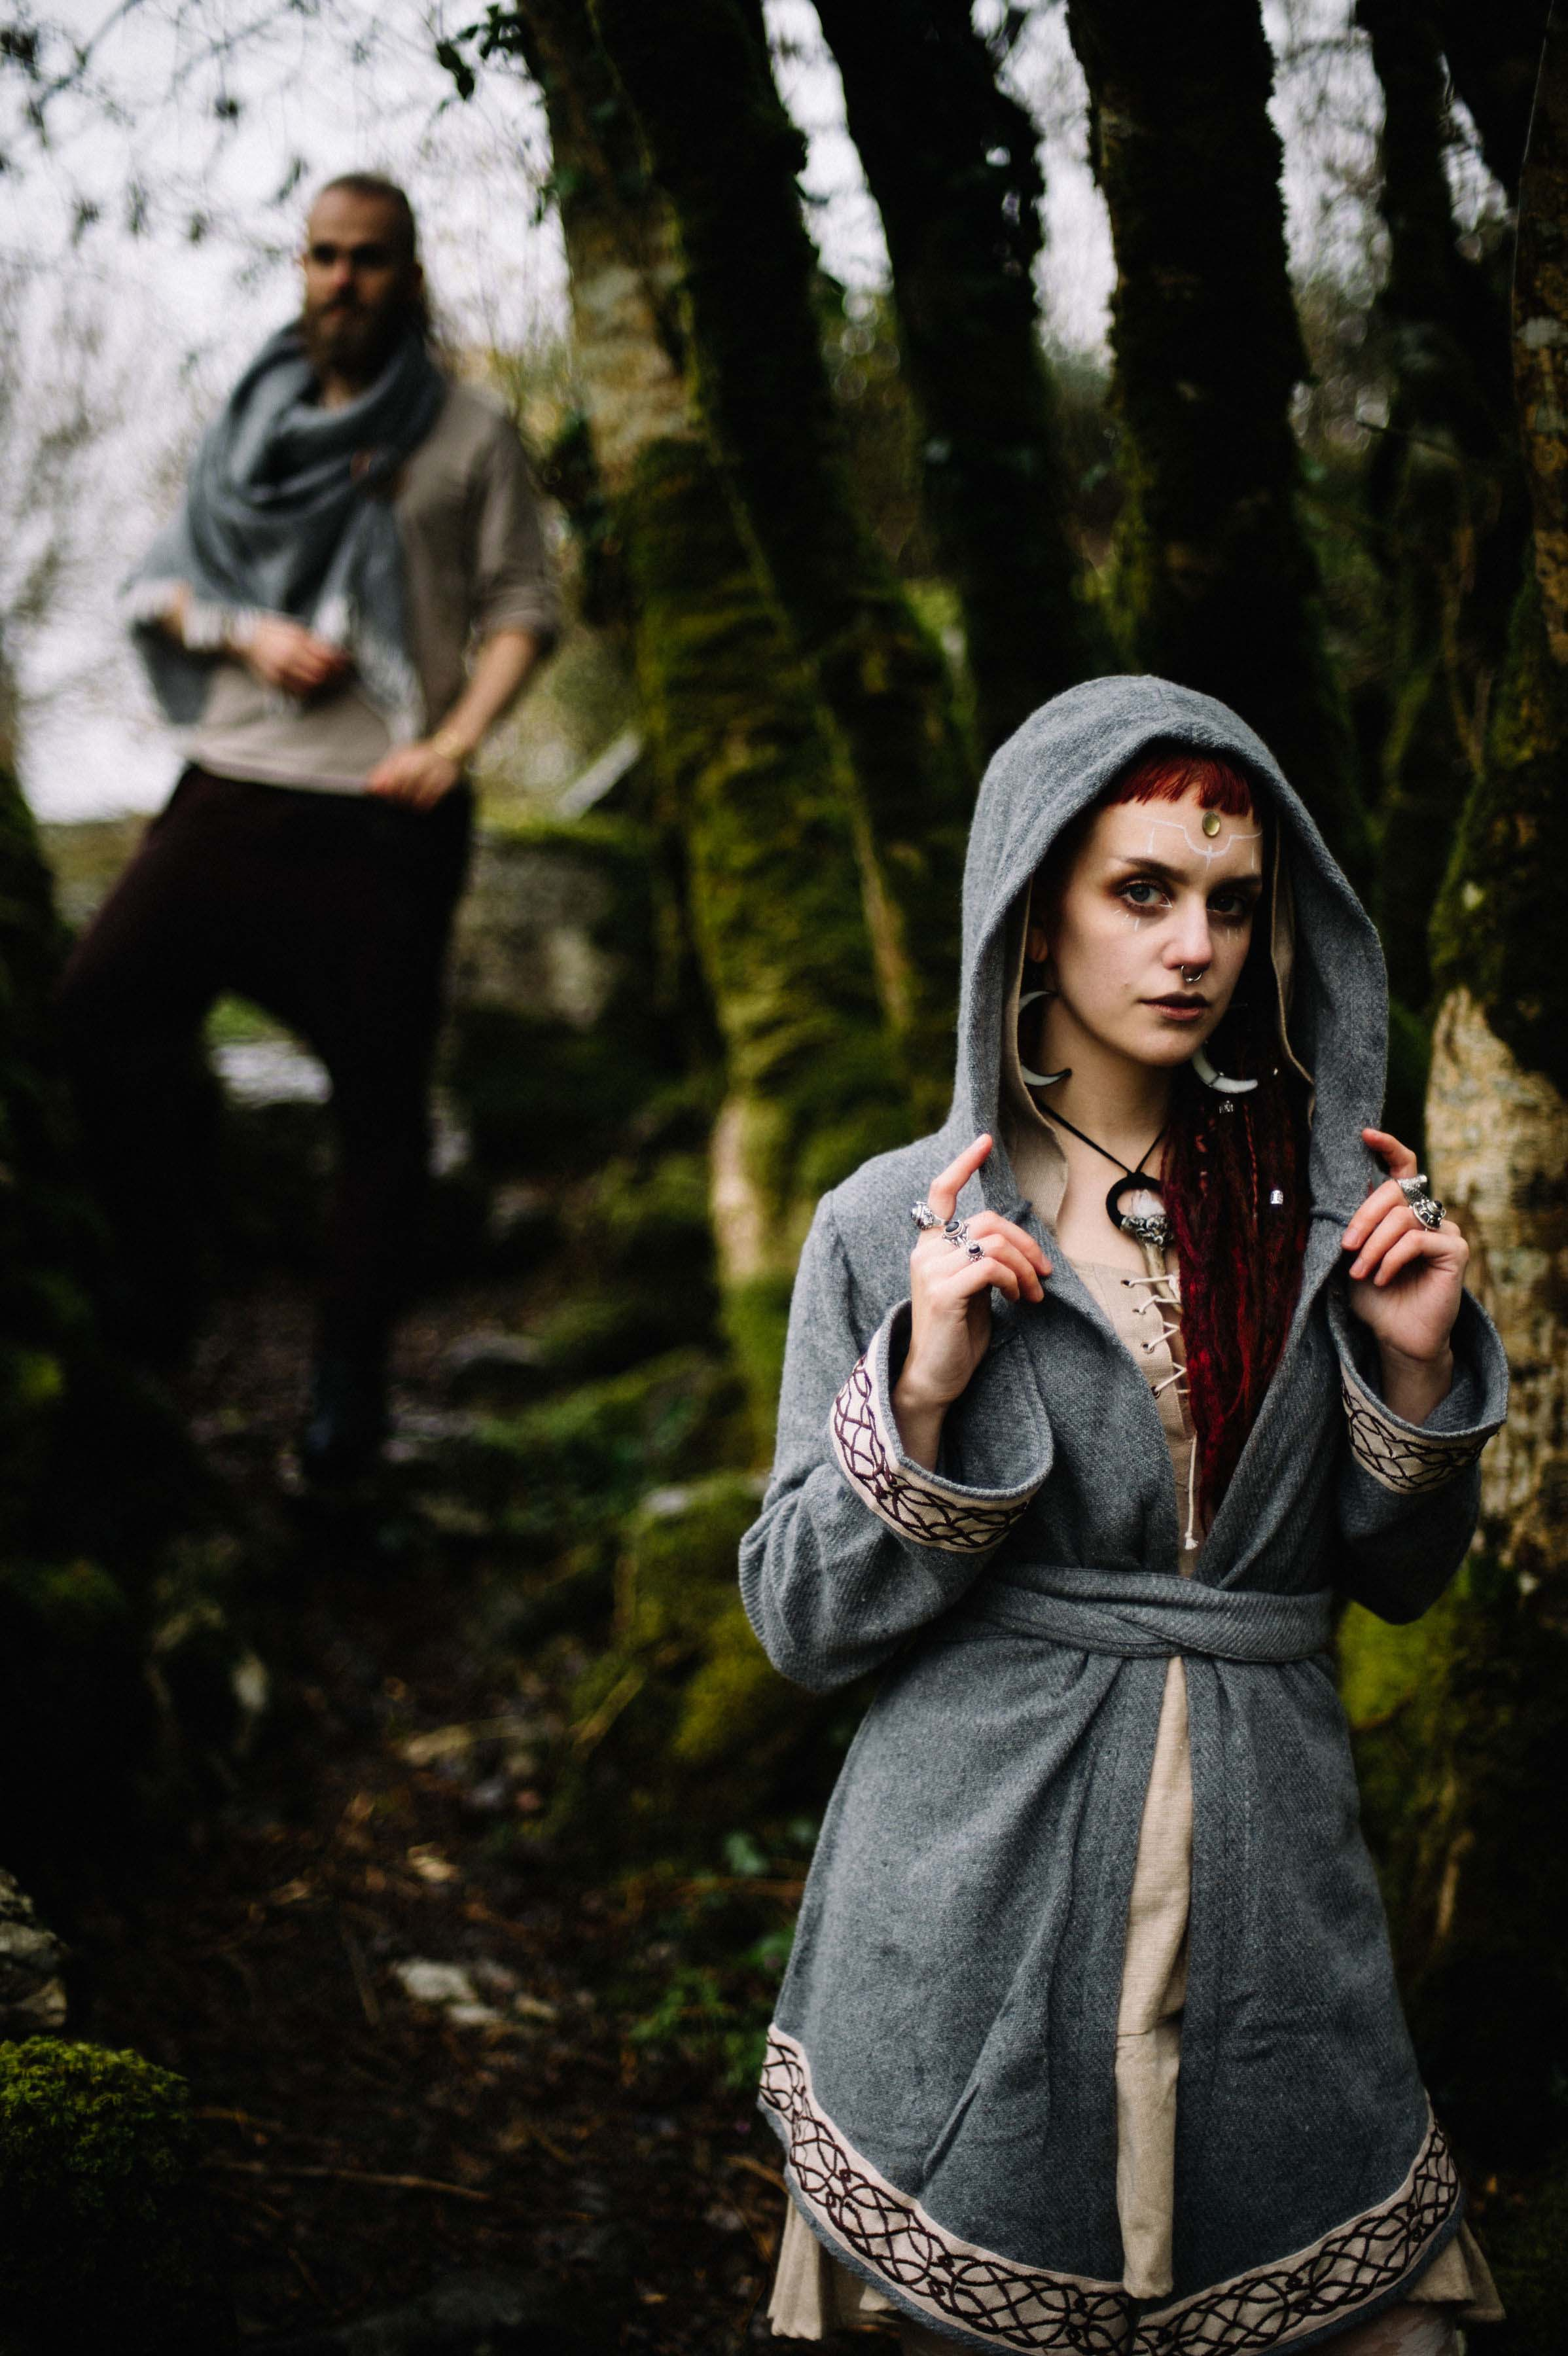 Leon and Manic moth in the mossy landscape of Temple Cronan